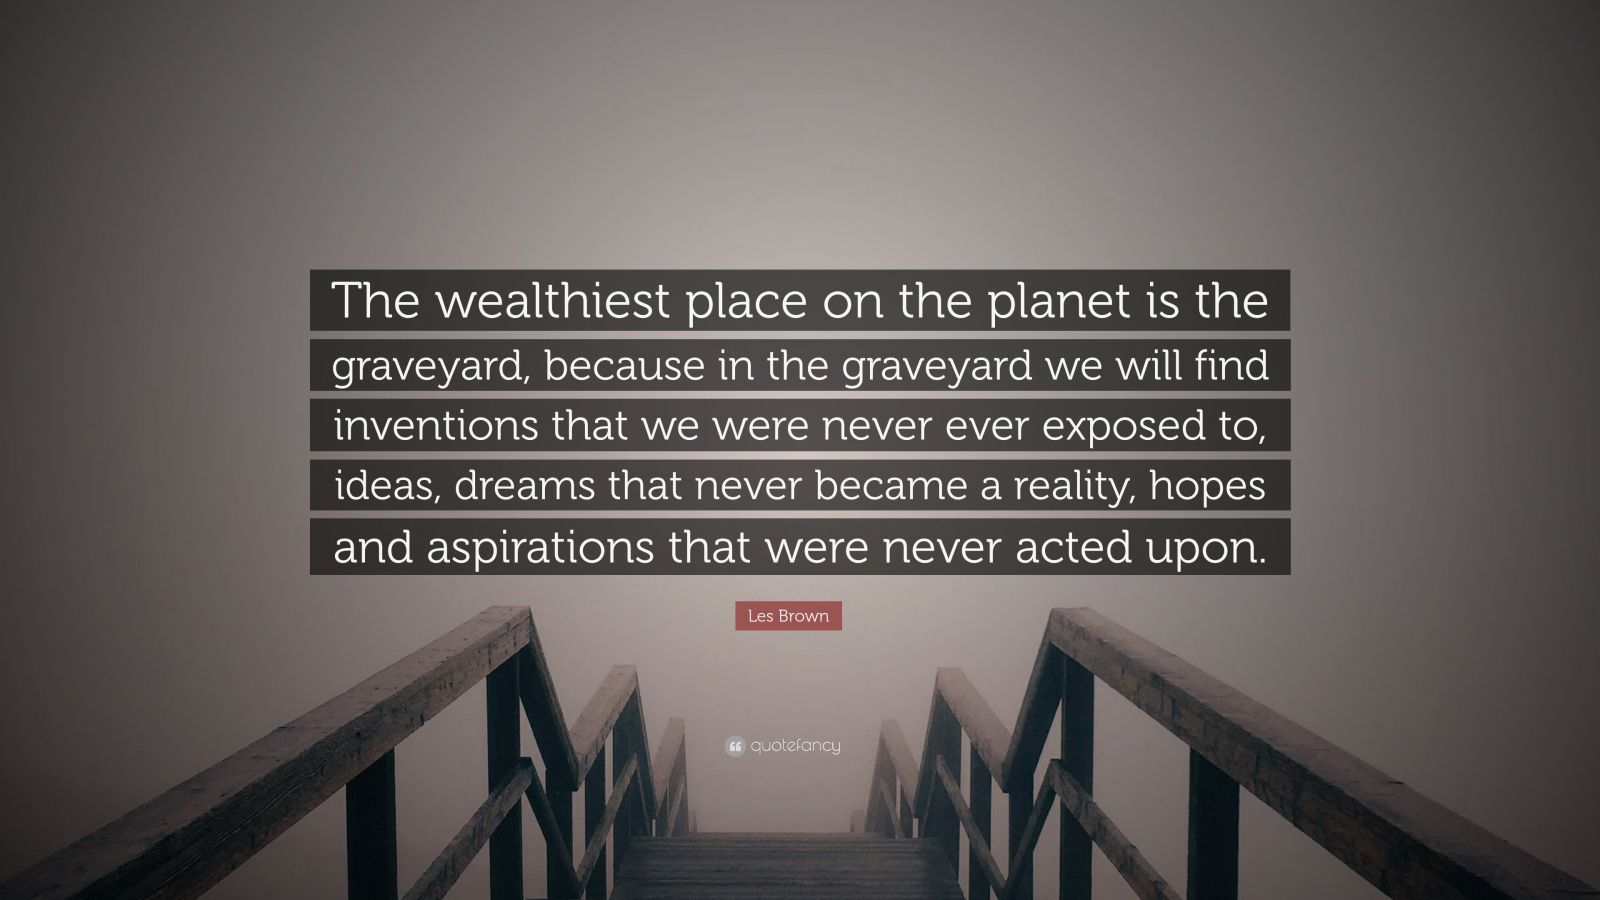 """Les Brown Quote: """"The wealthiest place on the planet is the graveyard, because in the graveyard we will find inventions that we were never ever exposed to, ideas, dreams that never became a reality, hopes and aspirations that were never acted upon."""""""